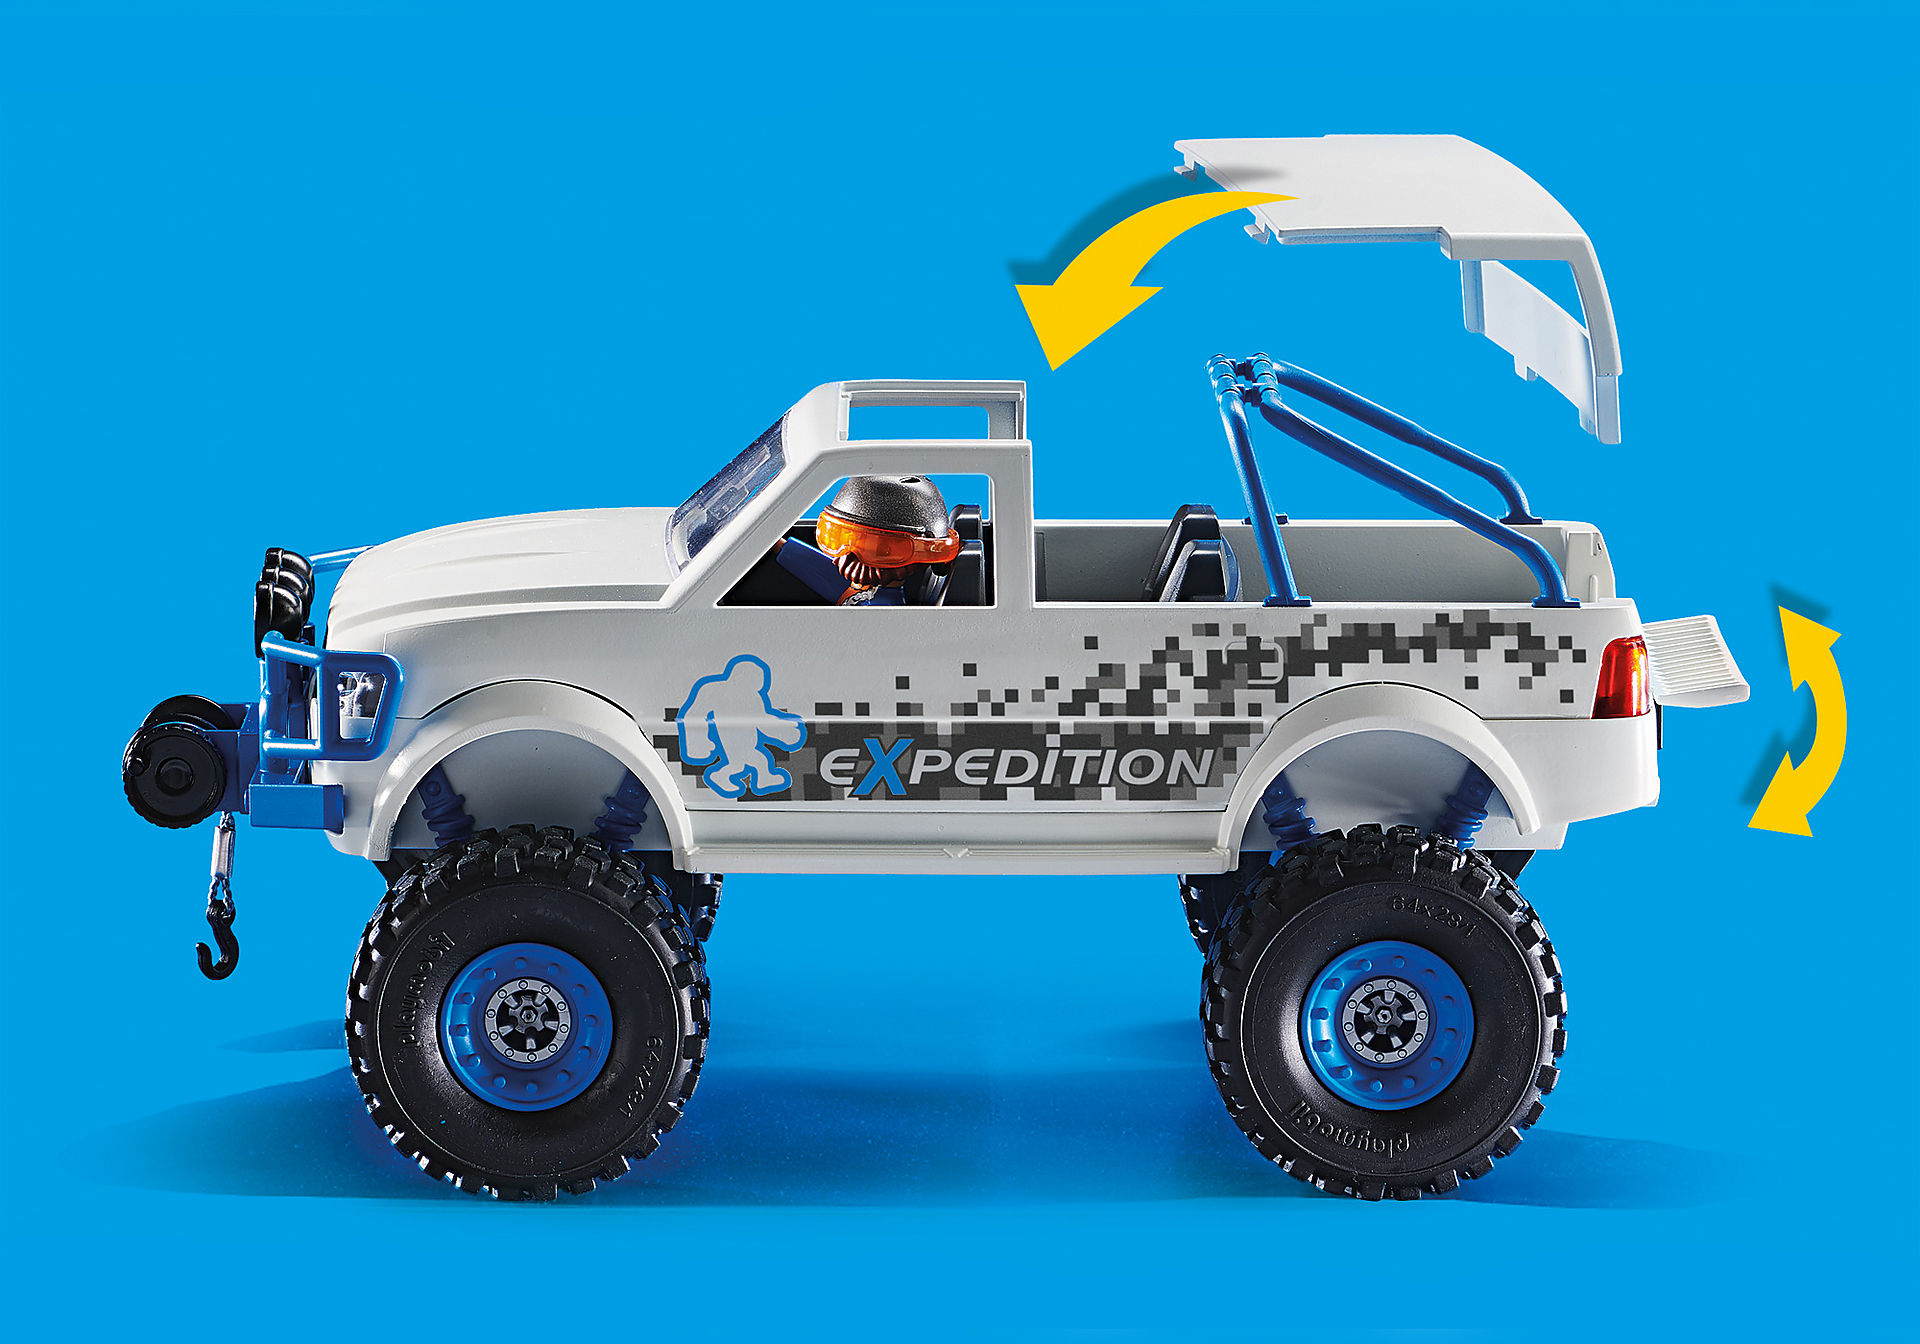 70532 Snow Beast Expedition zoom image3